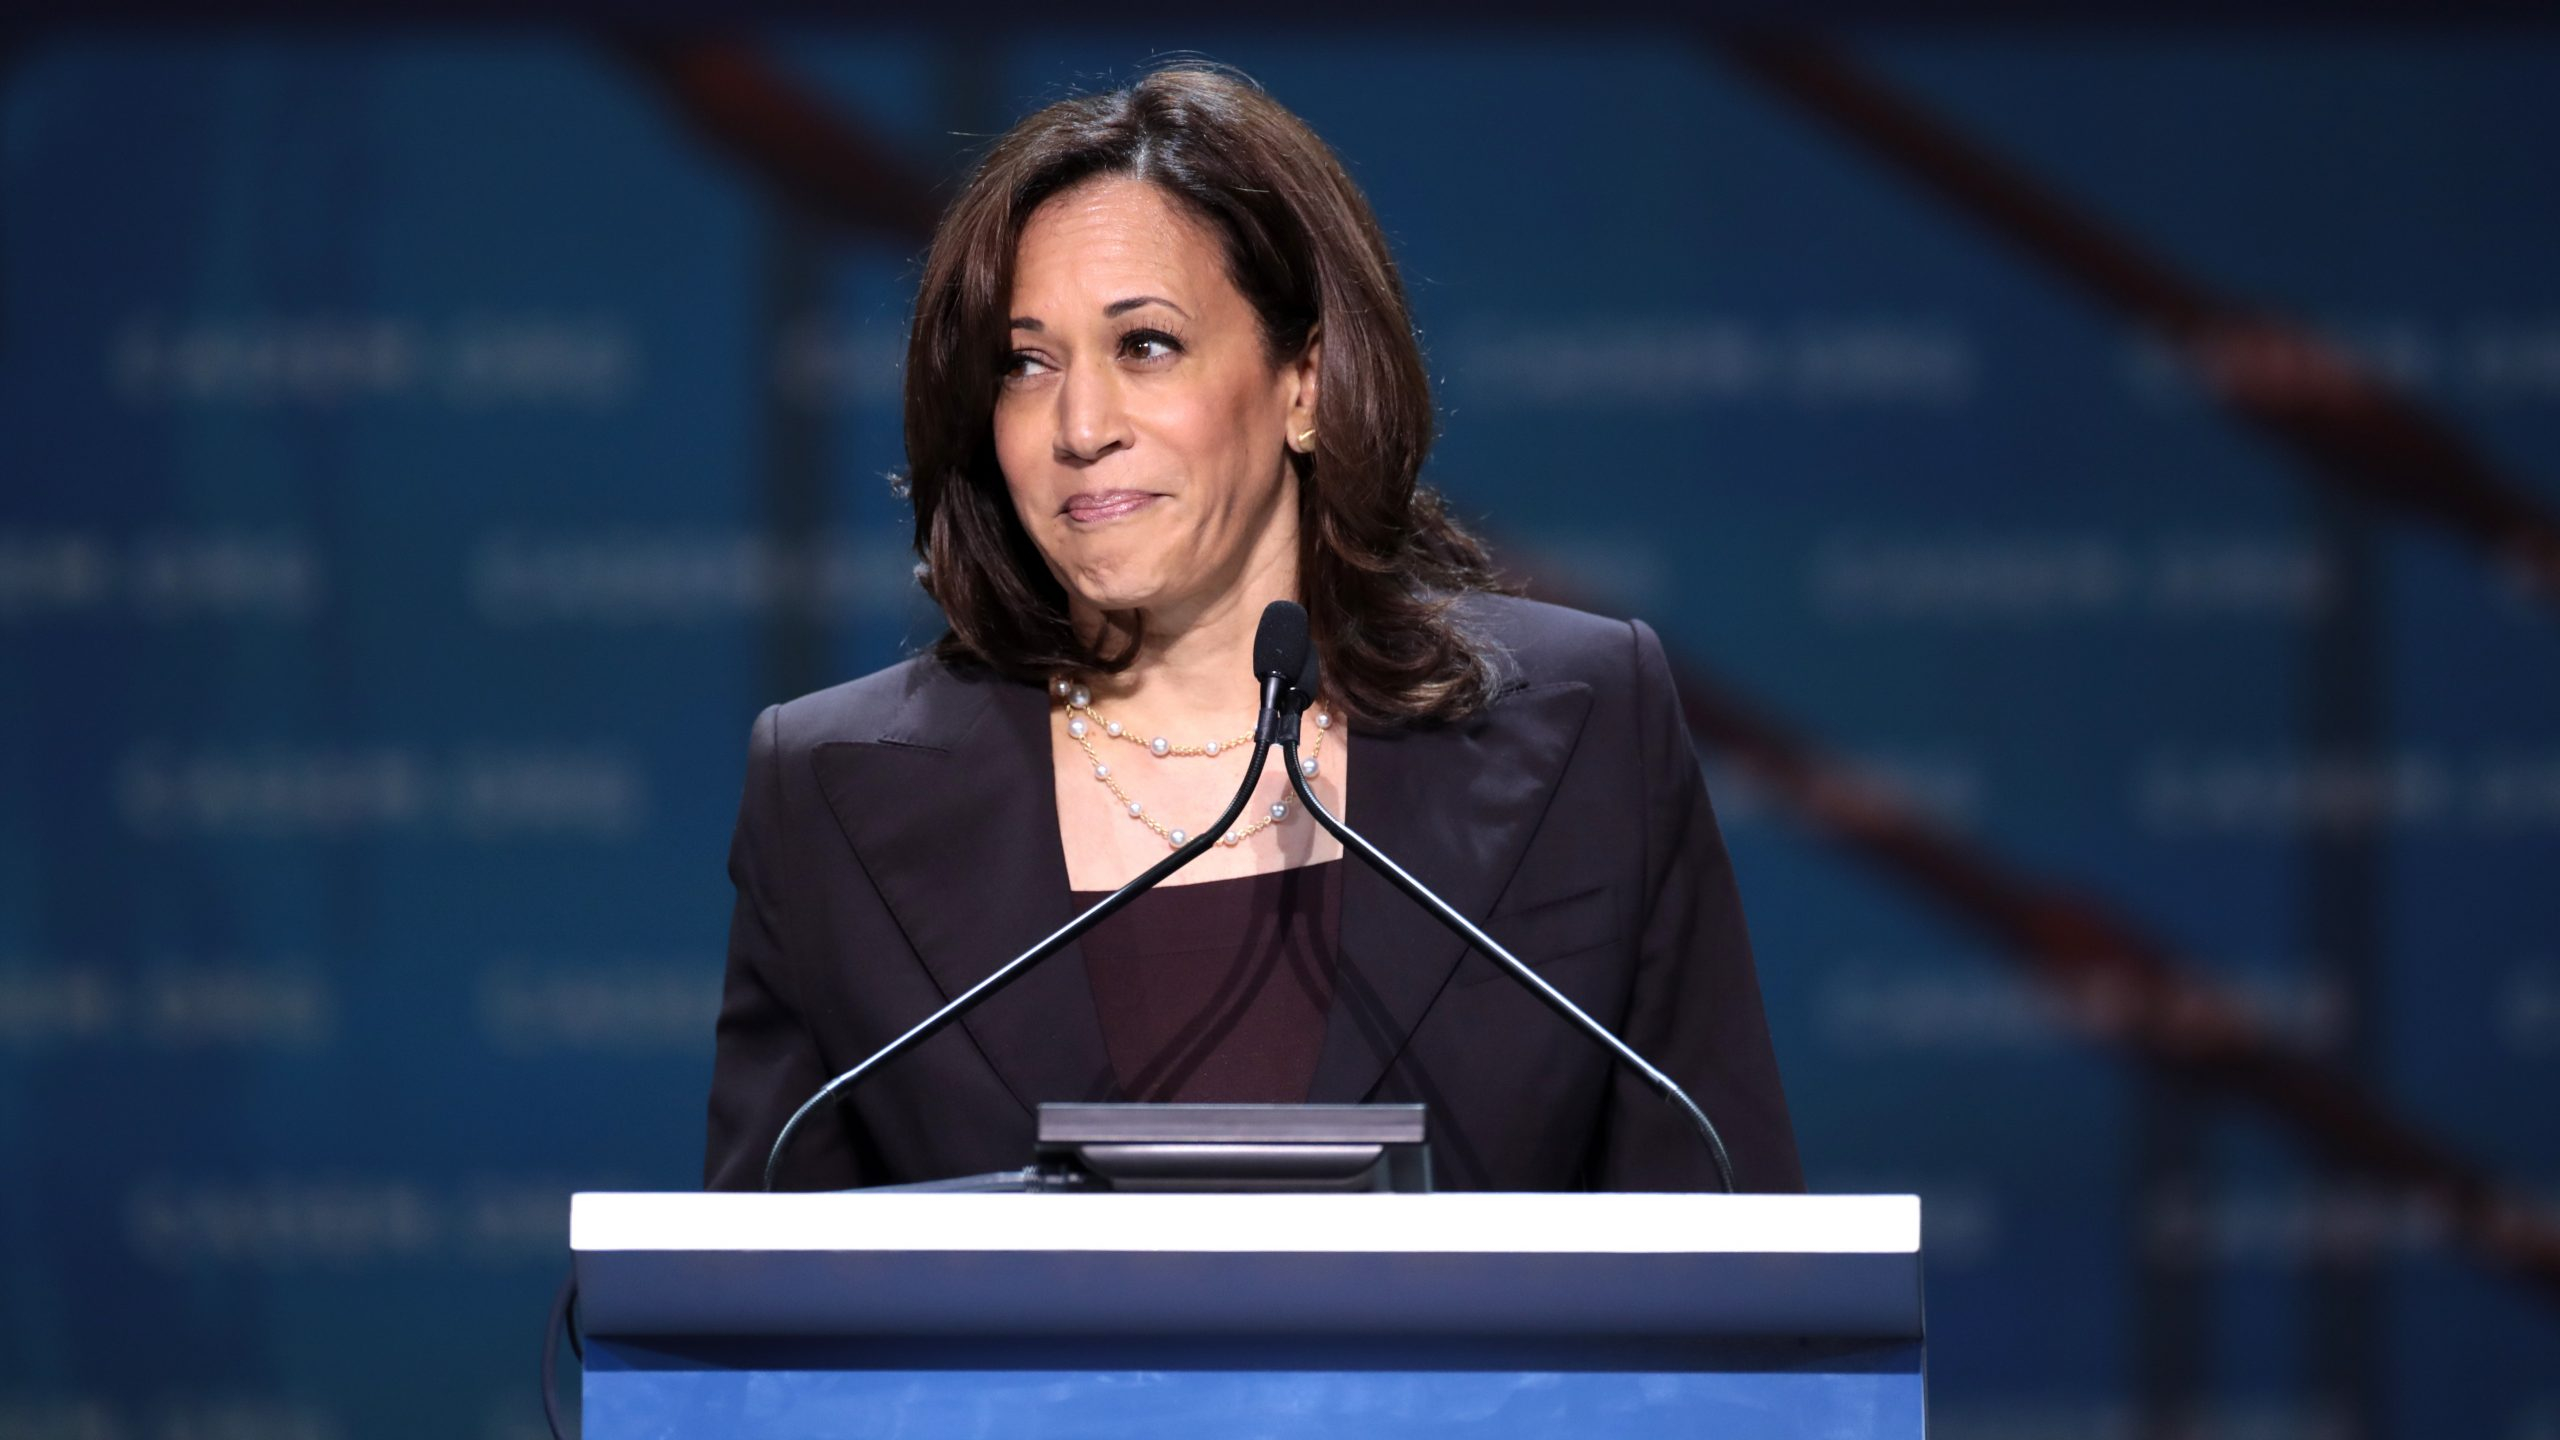 Kamala Harris California S Bad Cop Victimized The Vulnerable Fairfax County Republican Committee